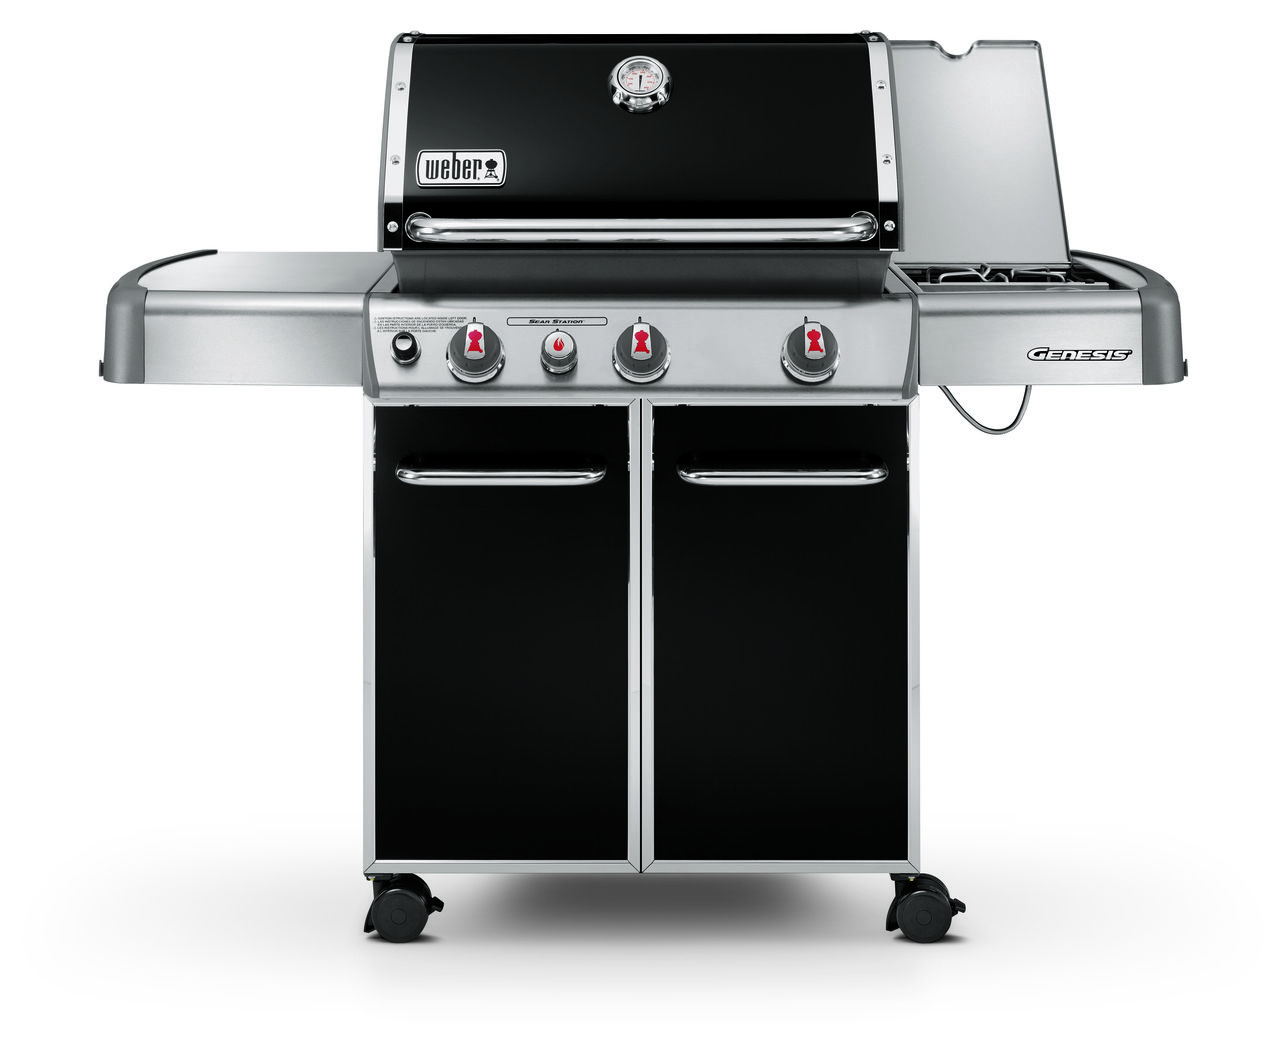 Weber Genesis E330 Lp Bbq Outdoor Kitchen Grill Backyard Grilling Gas Grill